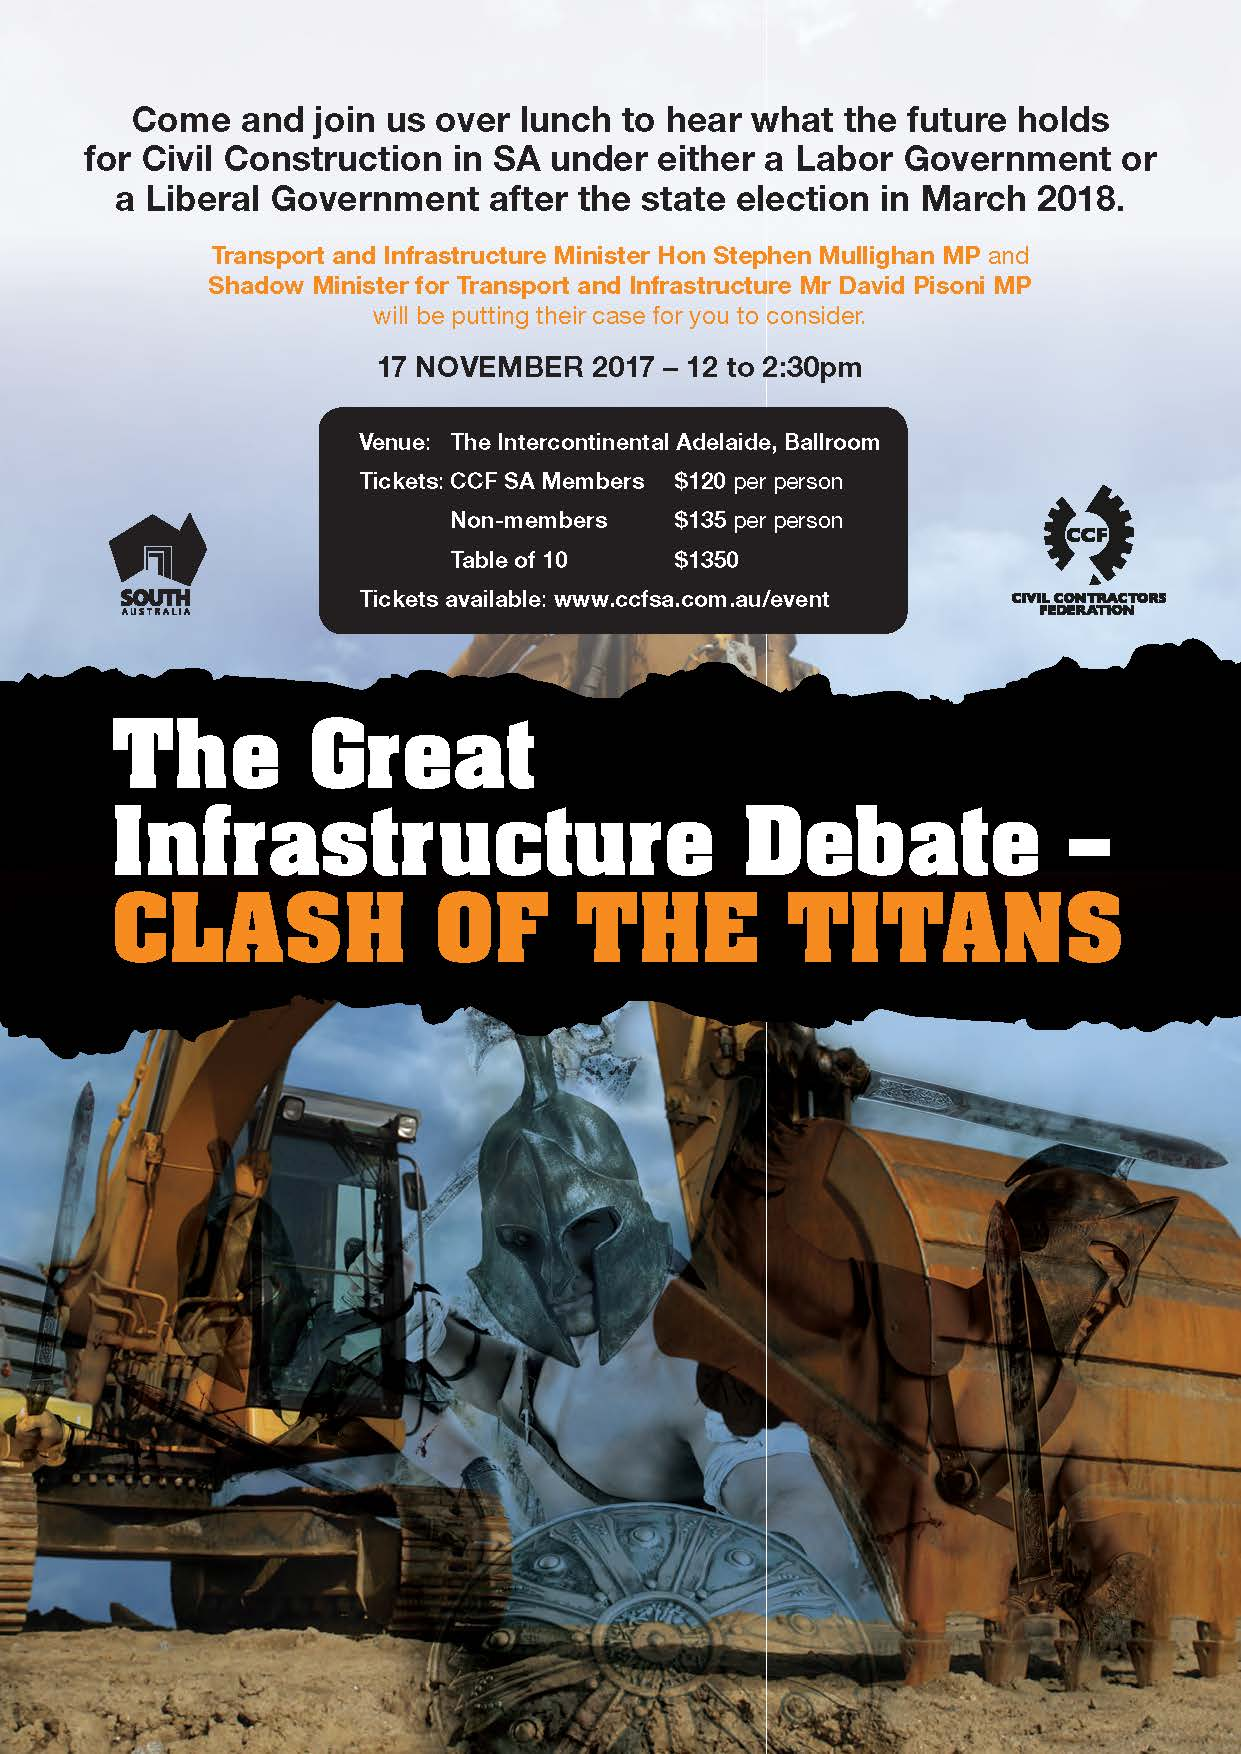 The Great Infrastructure Debate - Clash of the Titans